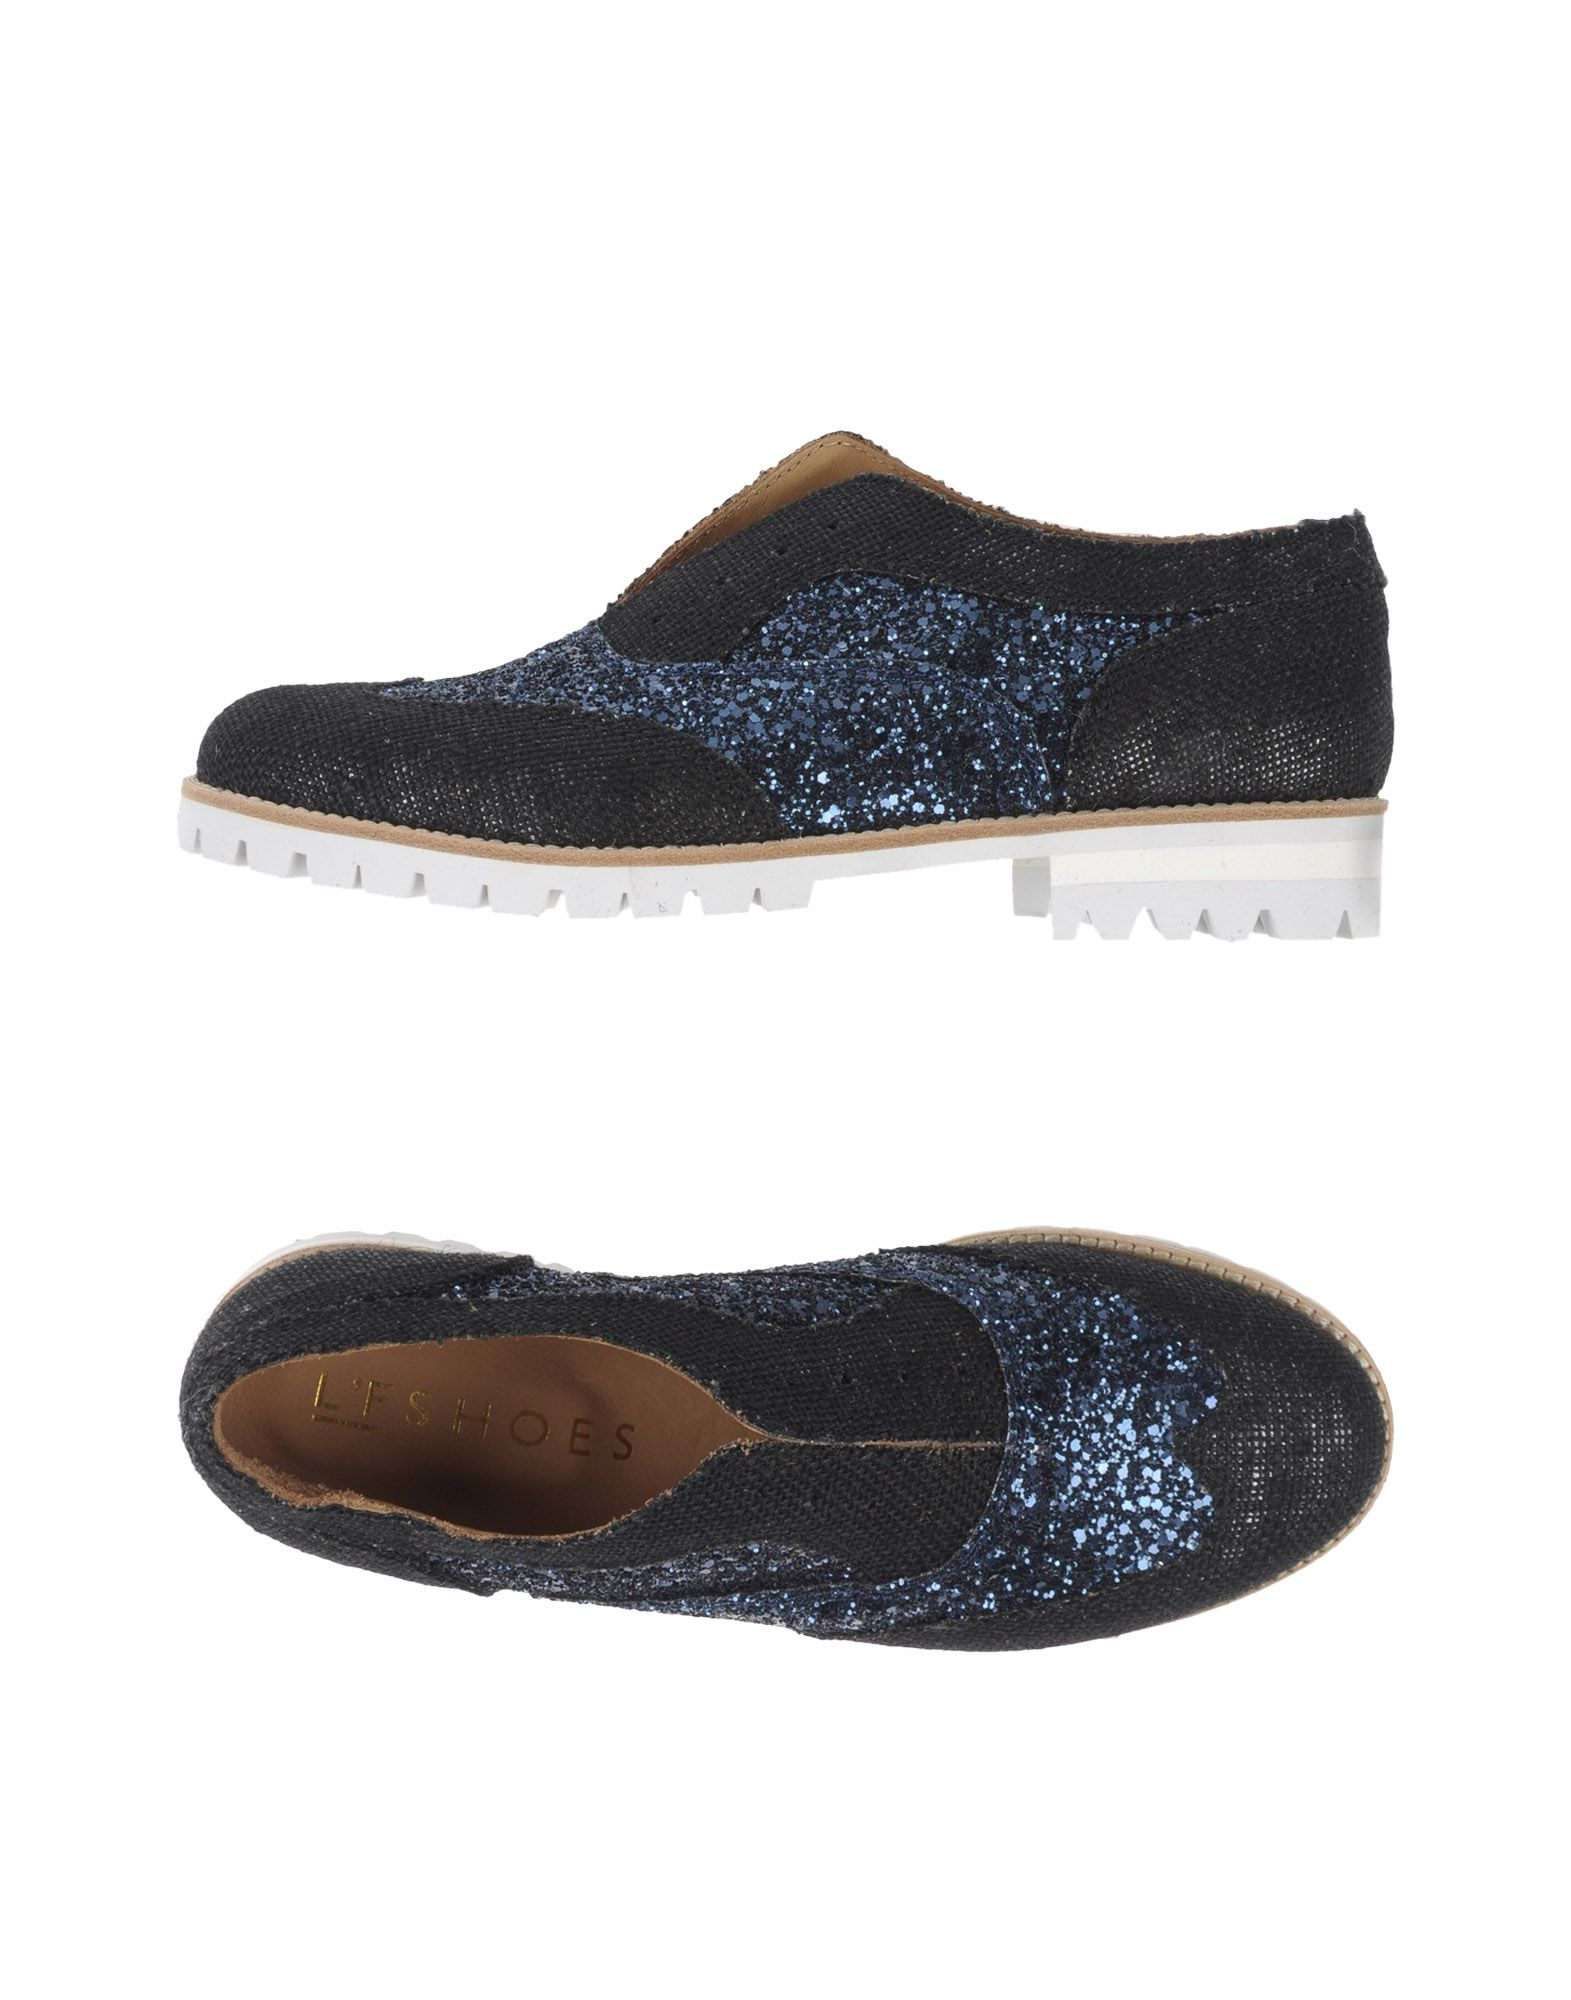 L'f Shoes Loafers - Women L'f Shoes Loafers online on 11081610SV  United Kingdom - 11081610SV on 543bde